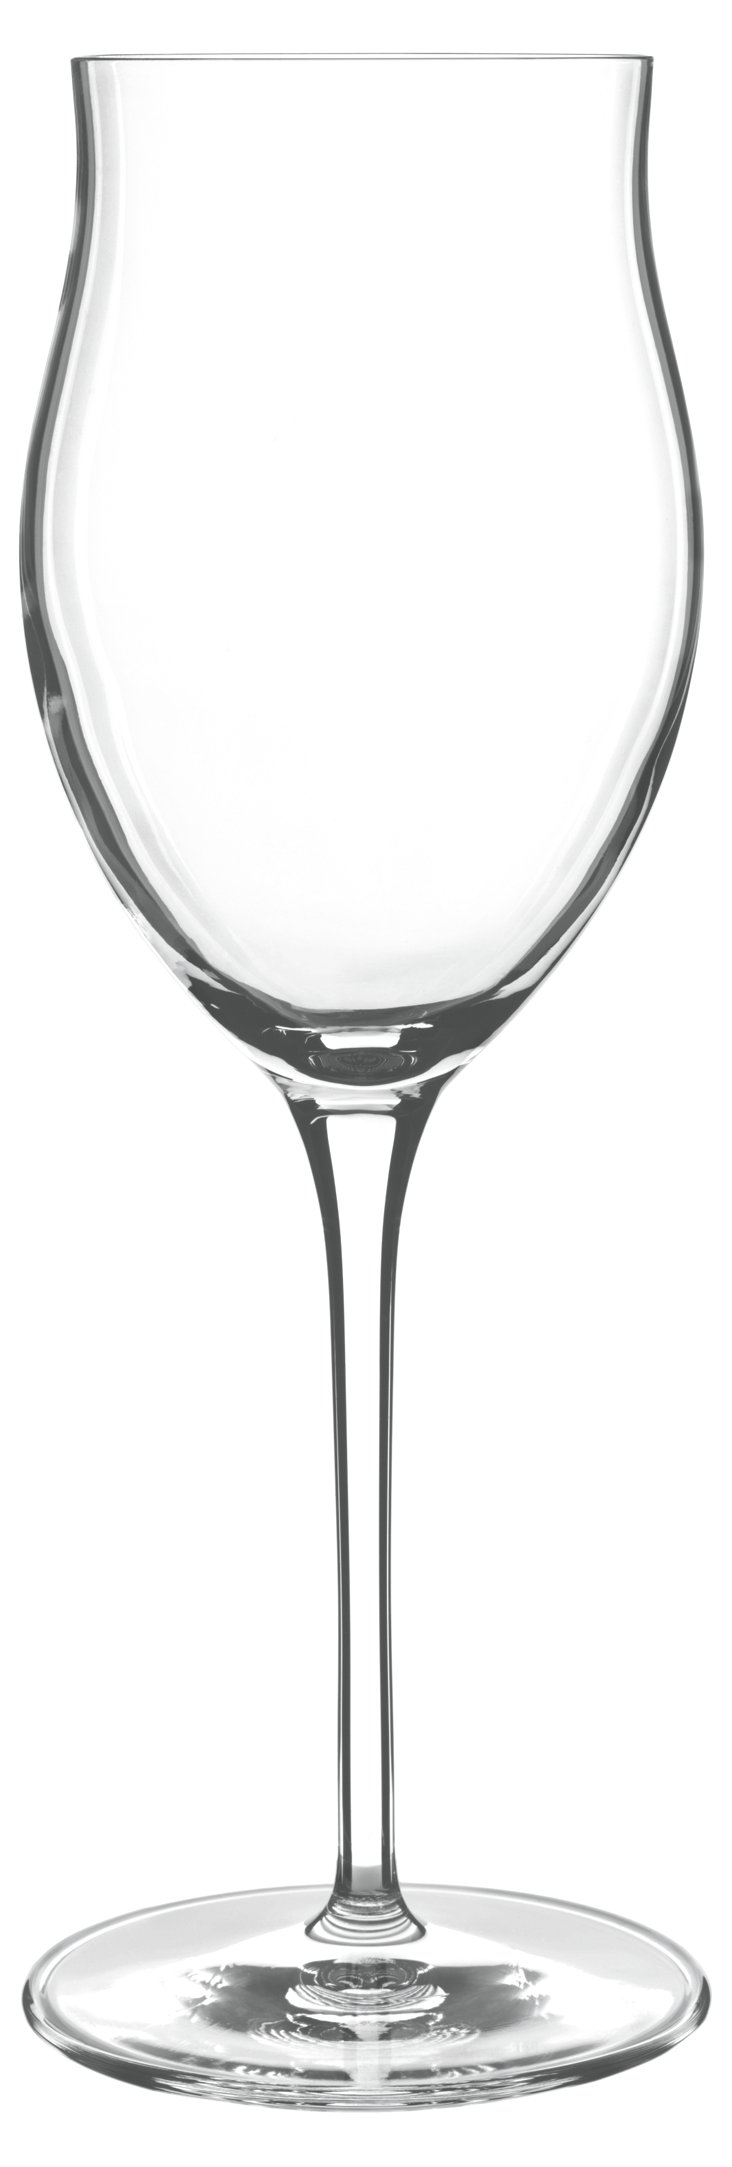 S/6 Tulip Wineglasses, 11.75 oz